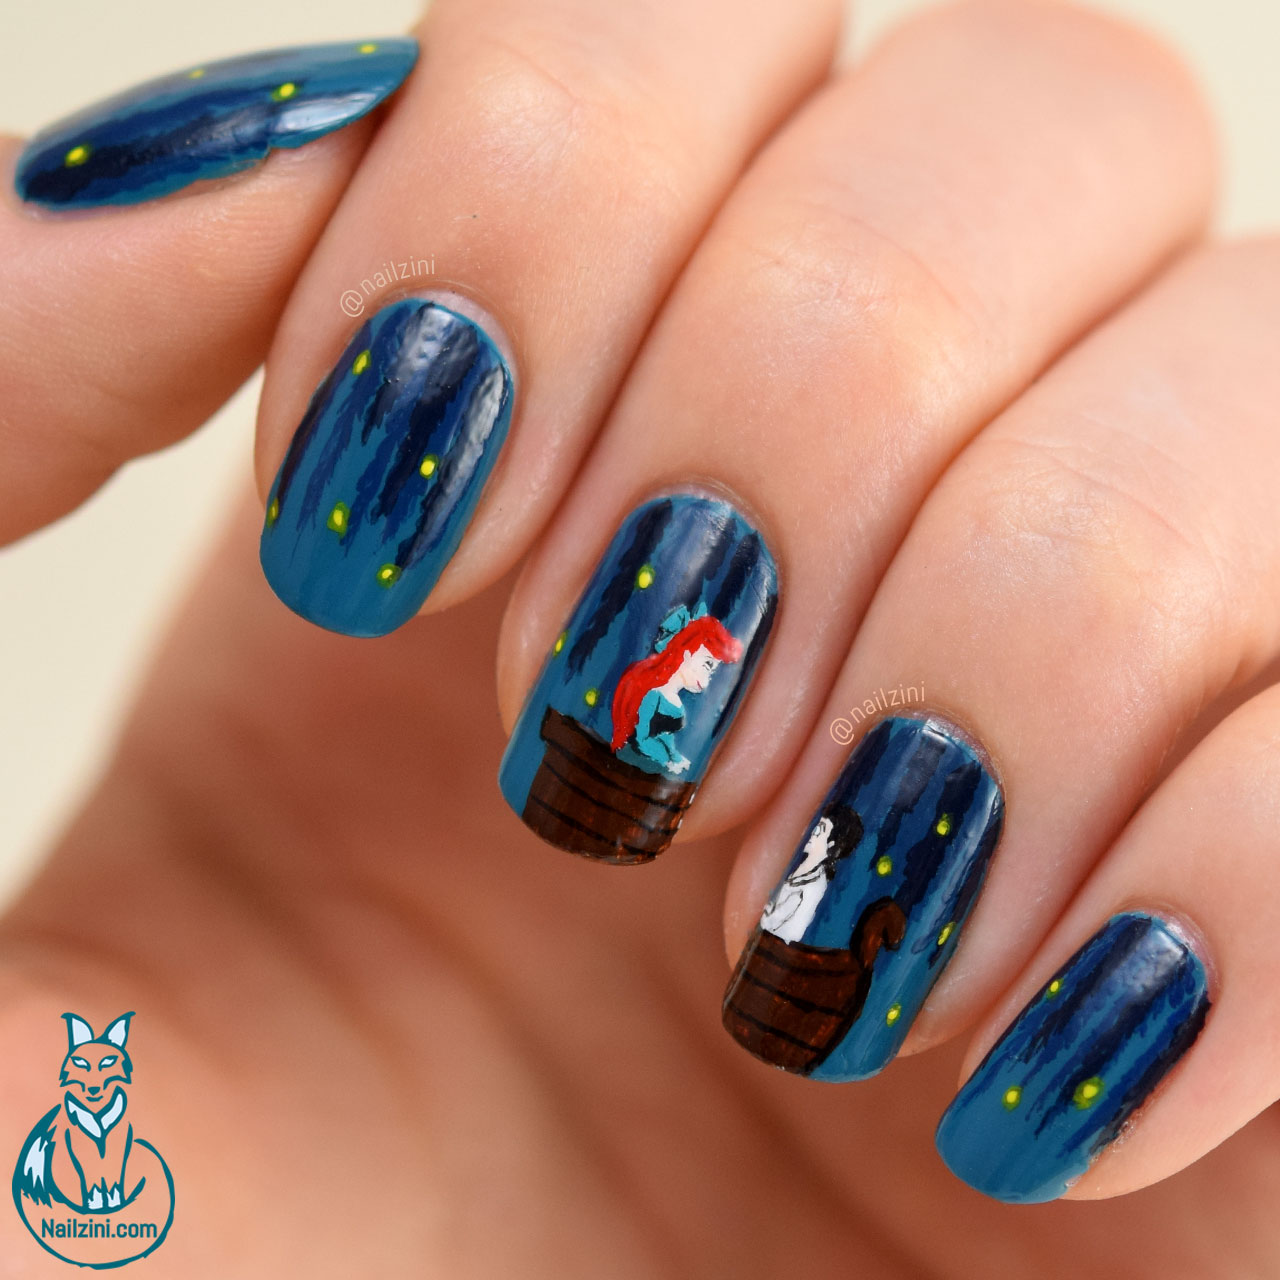 The Little Mermaid Nail Art Nailzini